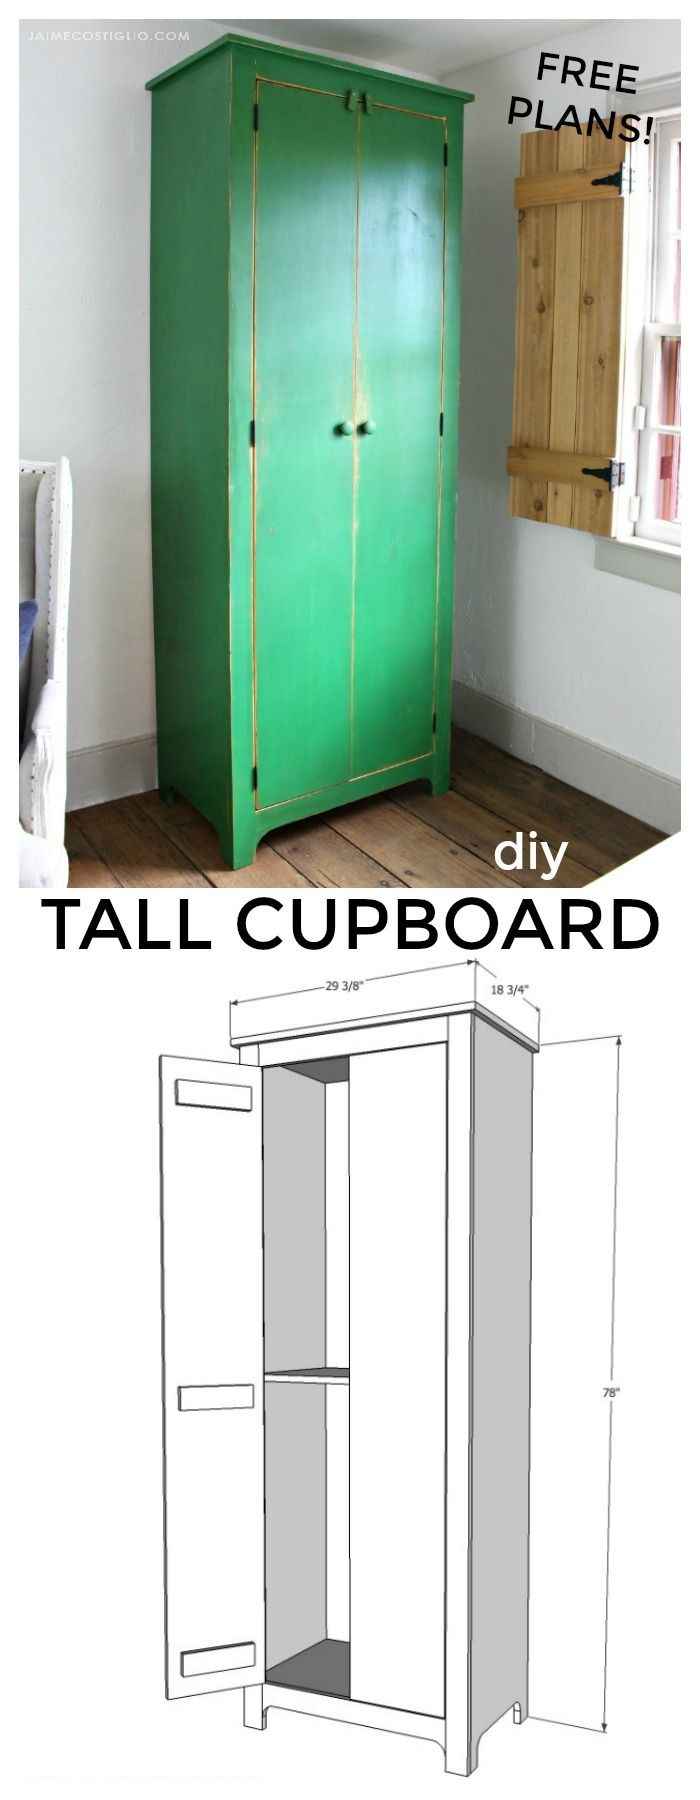 Tall Cupboard Free Plans Jaime Costiglio Diy Cupboards Diy Furniture Furniture Plans